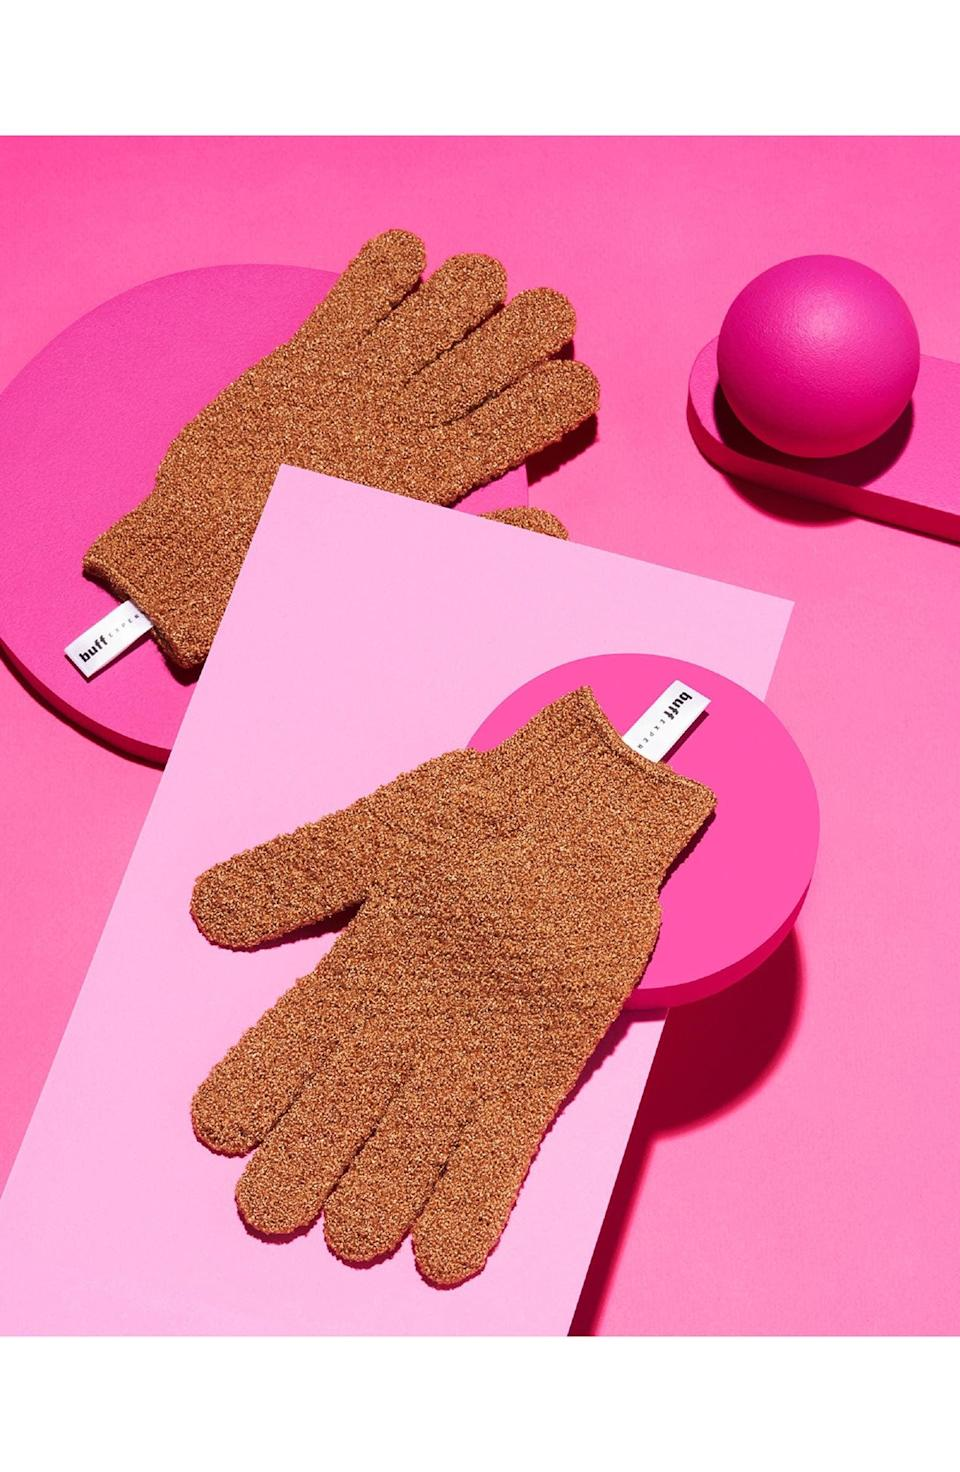 <p>The <span>Buff Experts Srsly Buffed Dry Brush In-Shower Exfoliating Gloves</span> ($10) are better than your average loofah. It helps you diminish ingrown hairs and exfoliate with ease in the shower.</p>